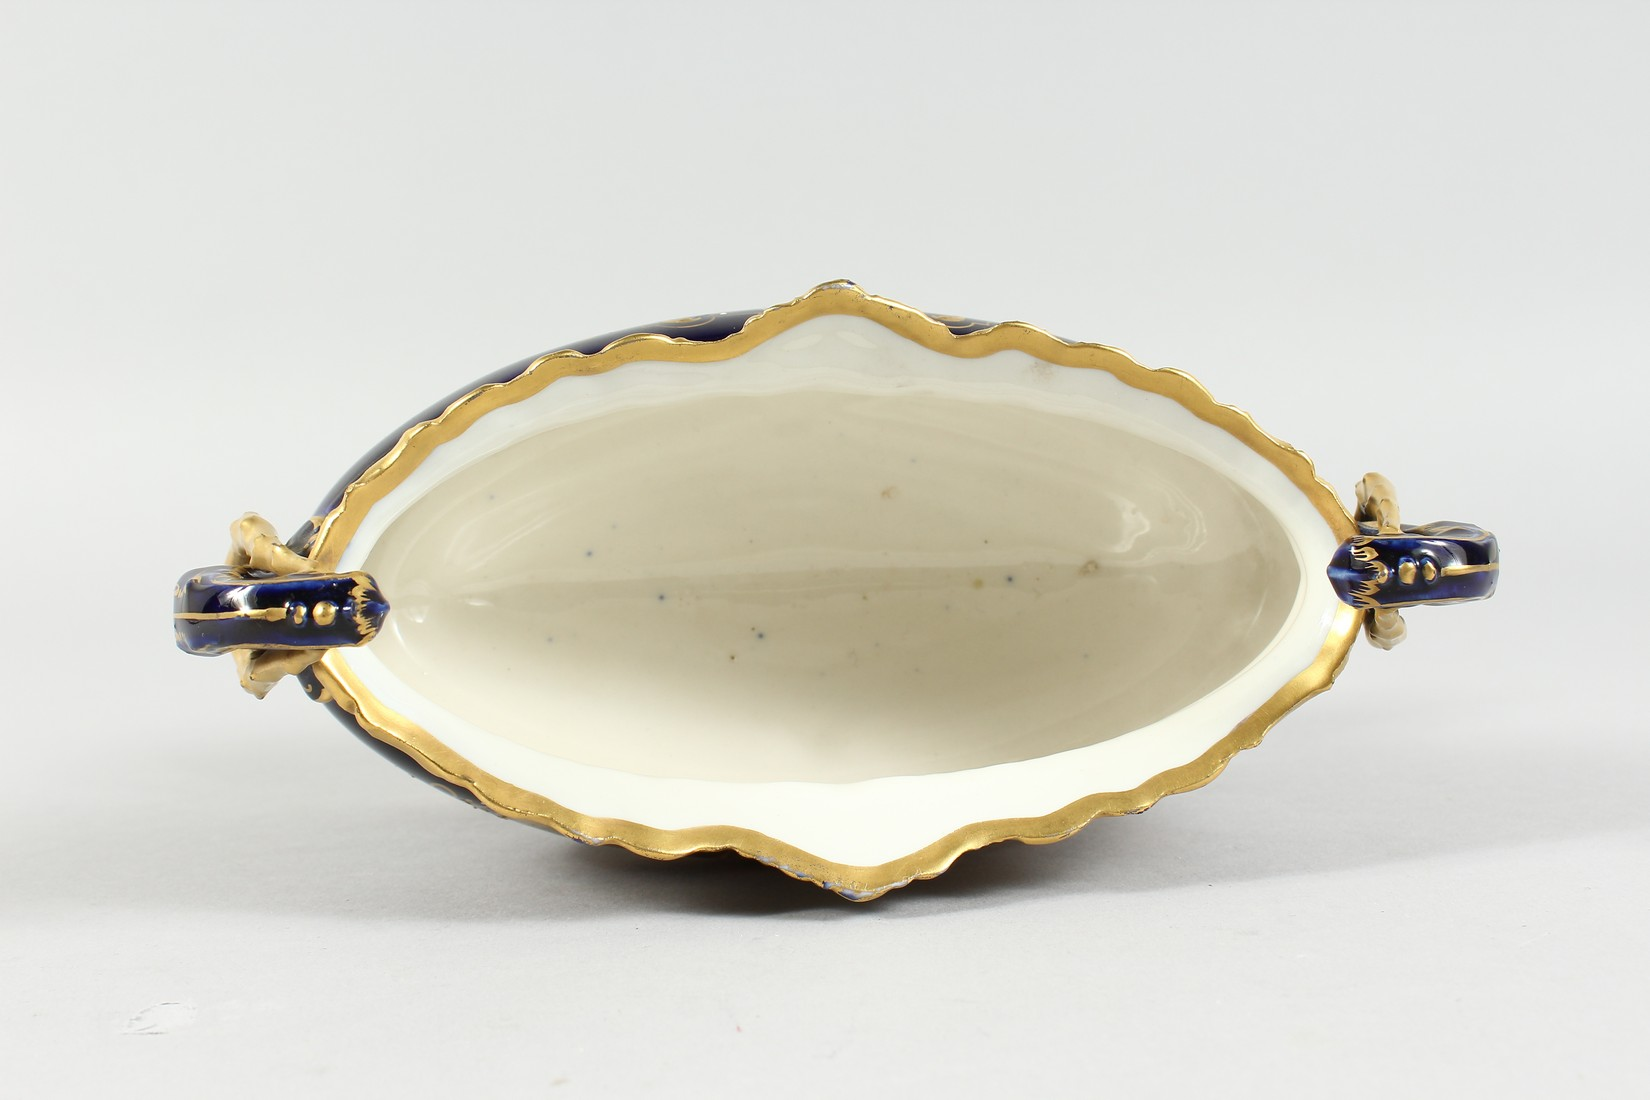 A 19TH CENTURY VIENNA PORCELAIN OVAL JARDINIERE, rich blue ground, edged in gilt and painted with - Image 7 of 11